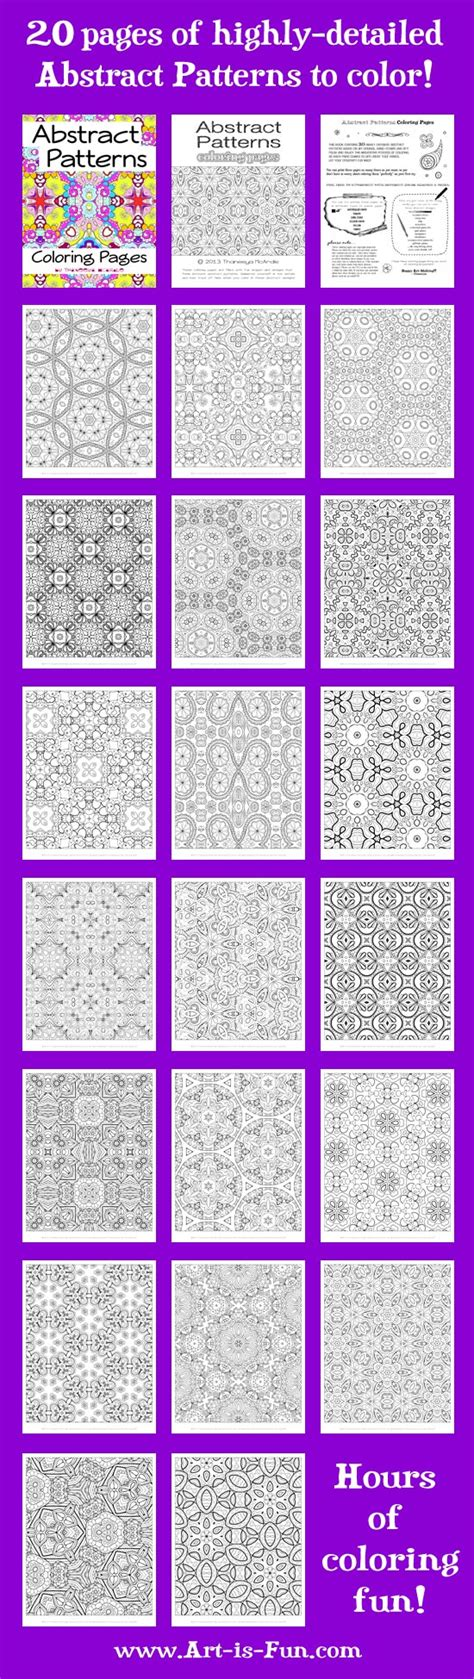 abstract pattern colouring books free abstract pattern coloring page detailed psychedelic